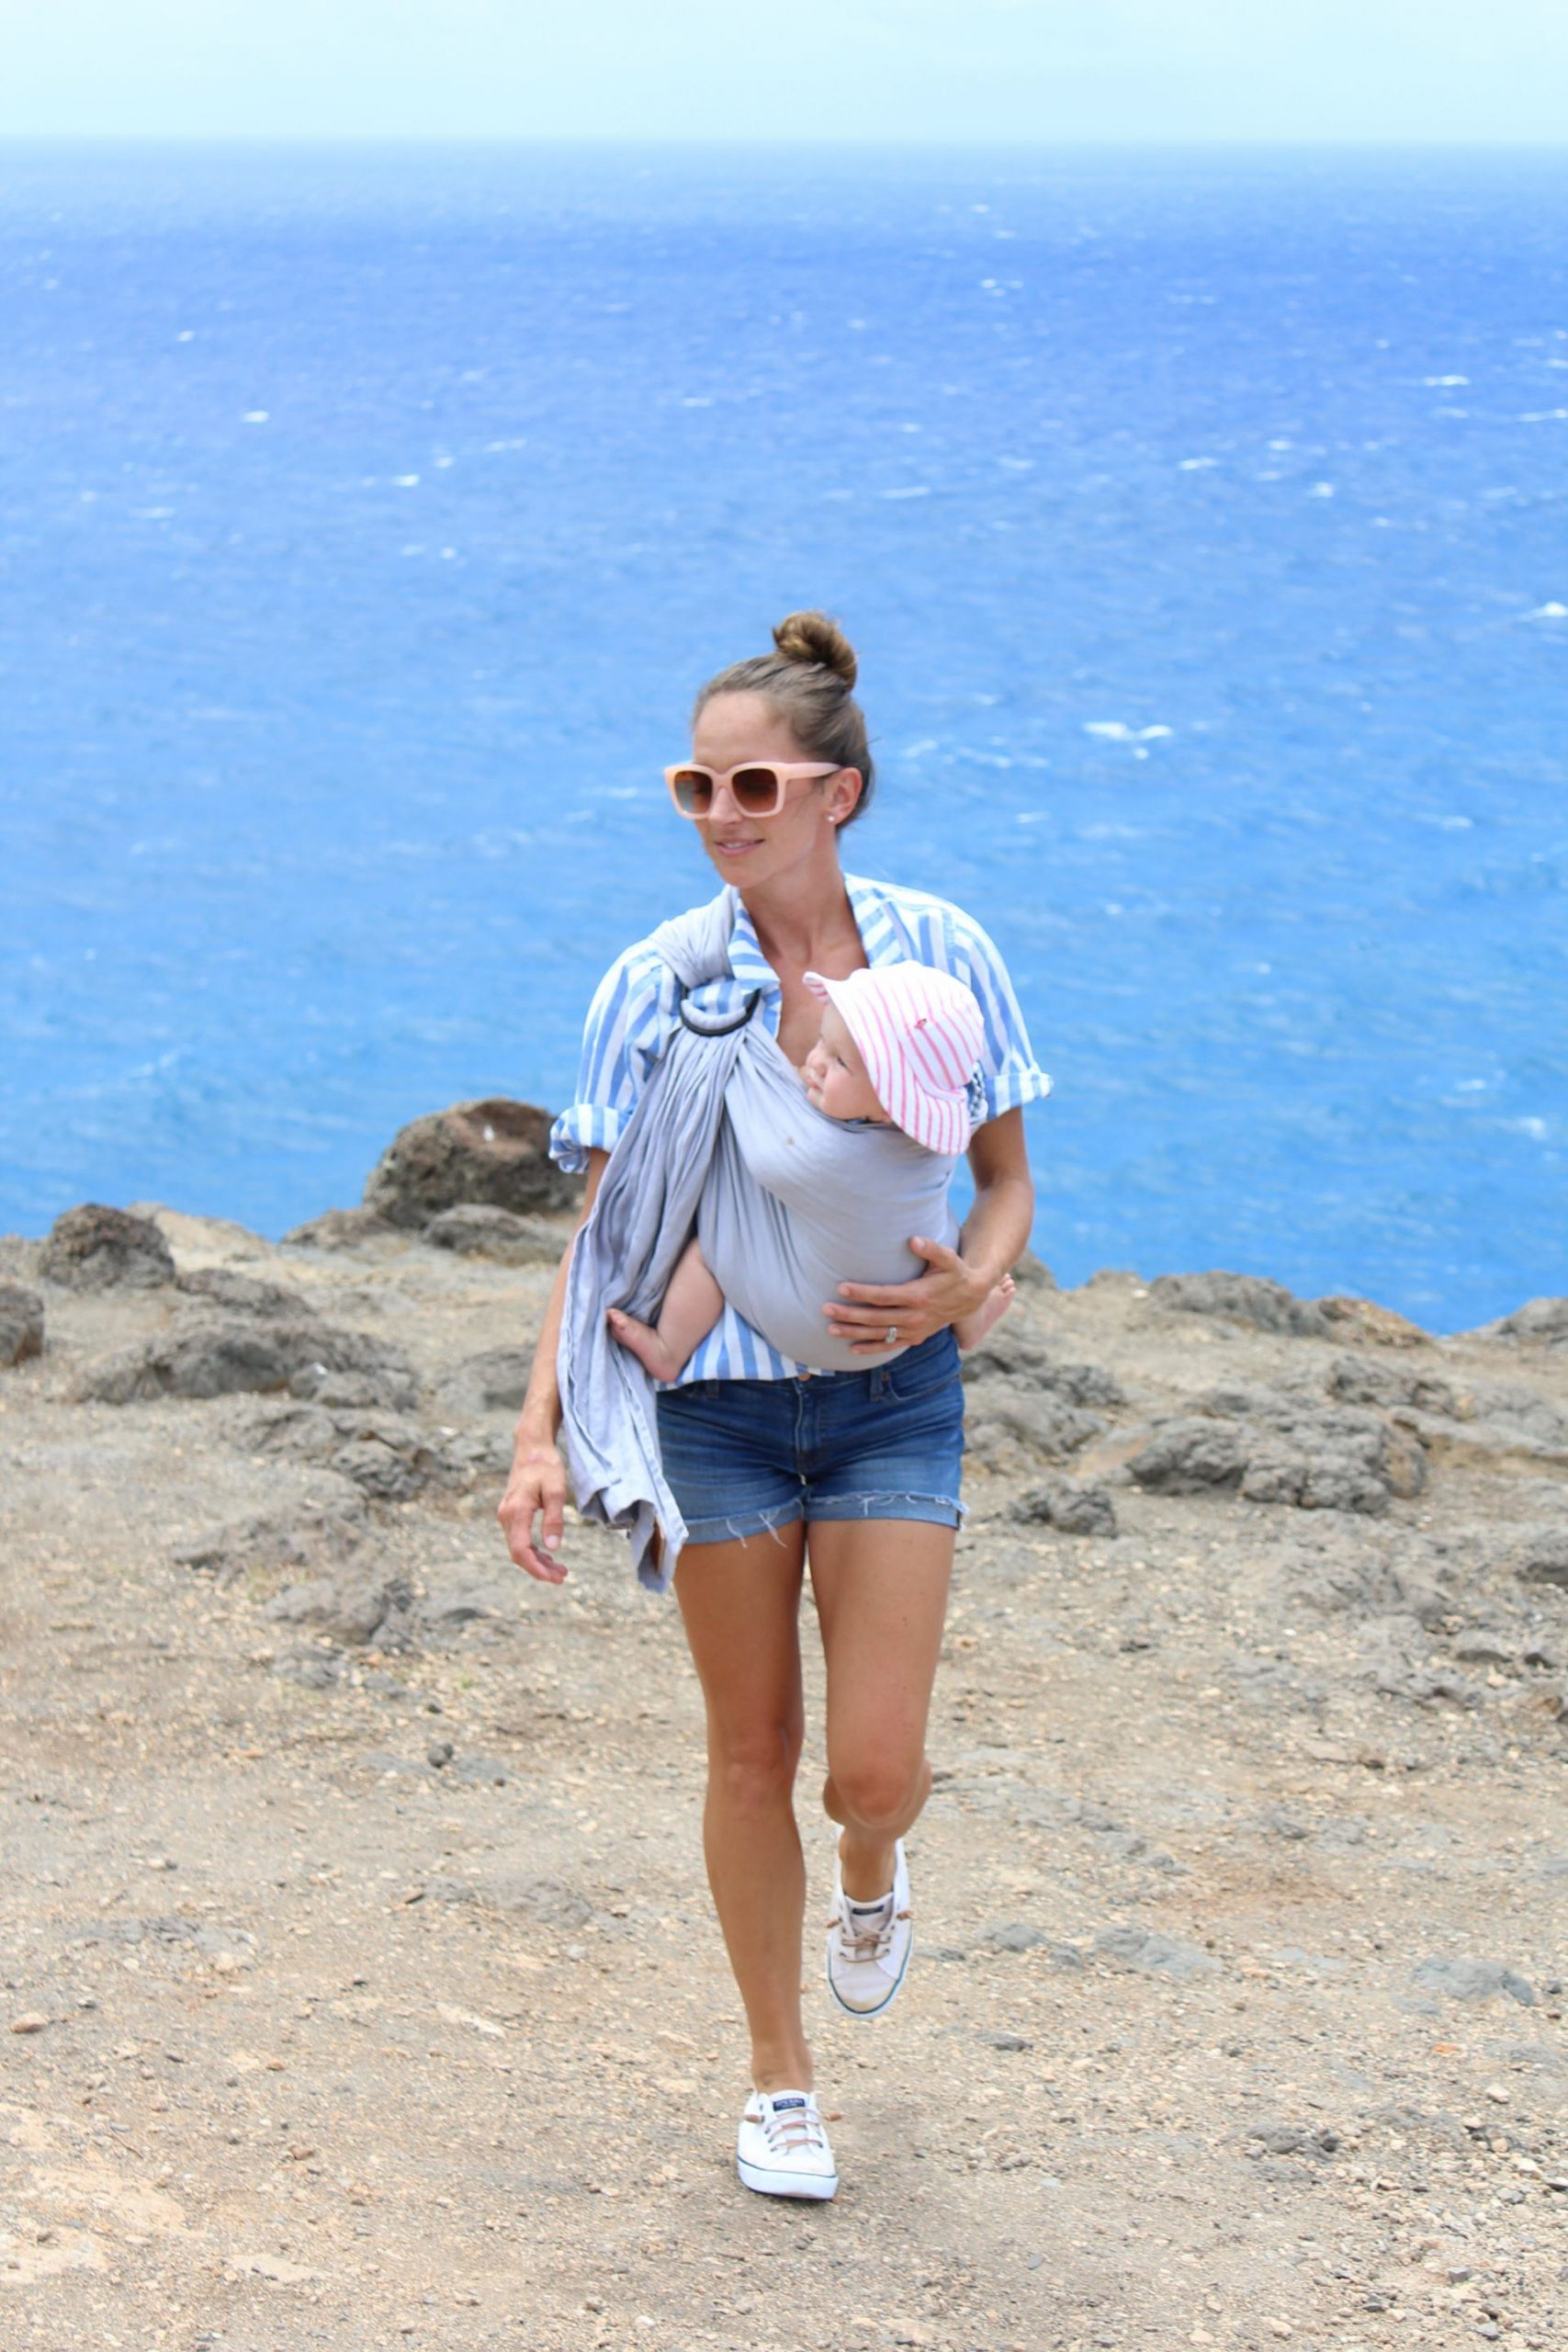 makapuu light house trail - travel blogger - hawaii blogger- wild bird ring sling - photography tips